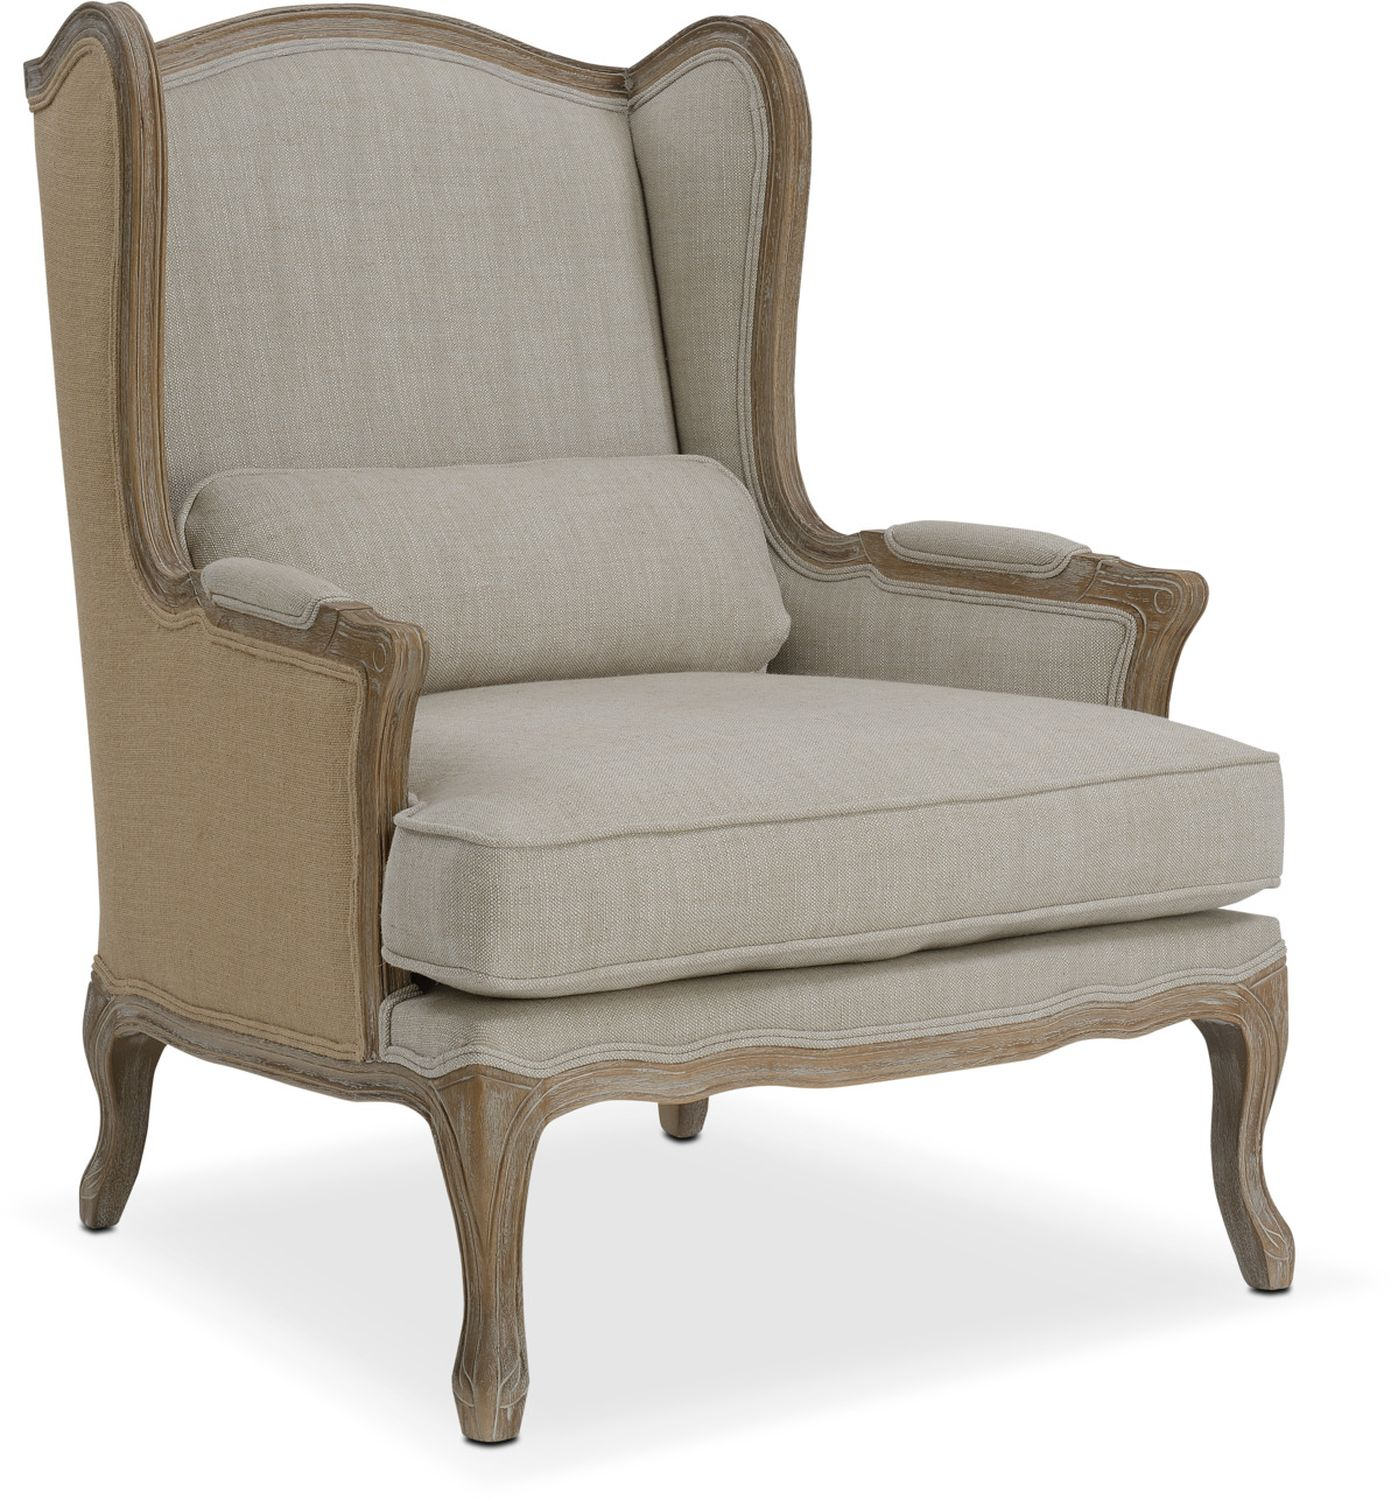 Living Room Furniture - Maria Accent Chair - Ivory